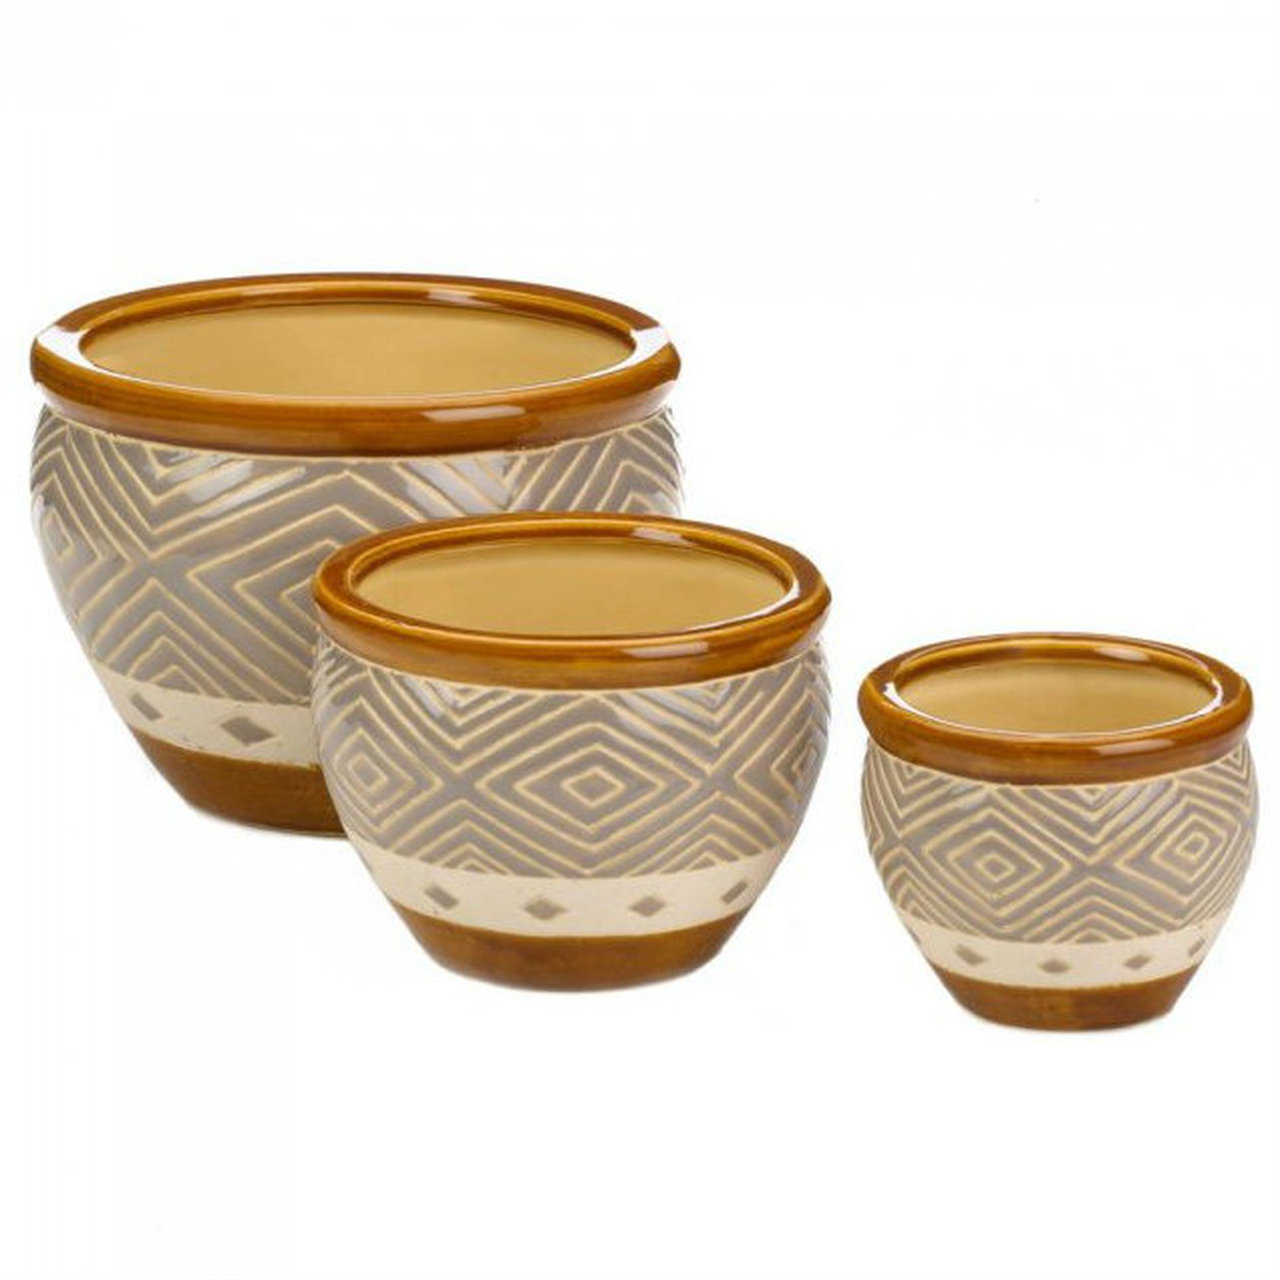 Earth-Tone Ceramic Diamond Pattern Planter Set